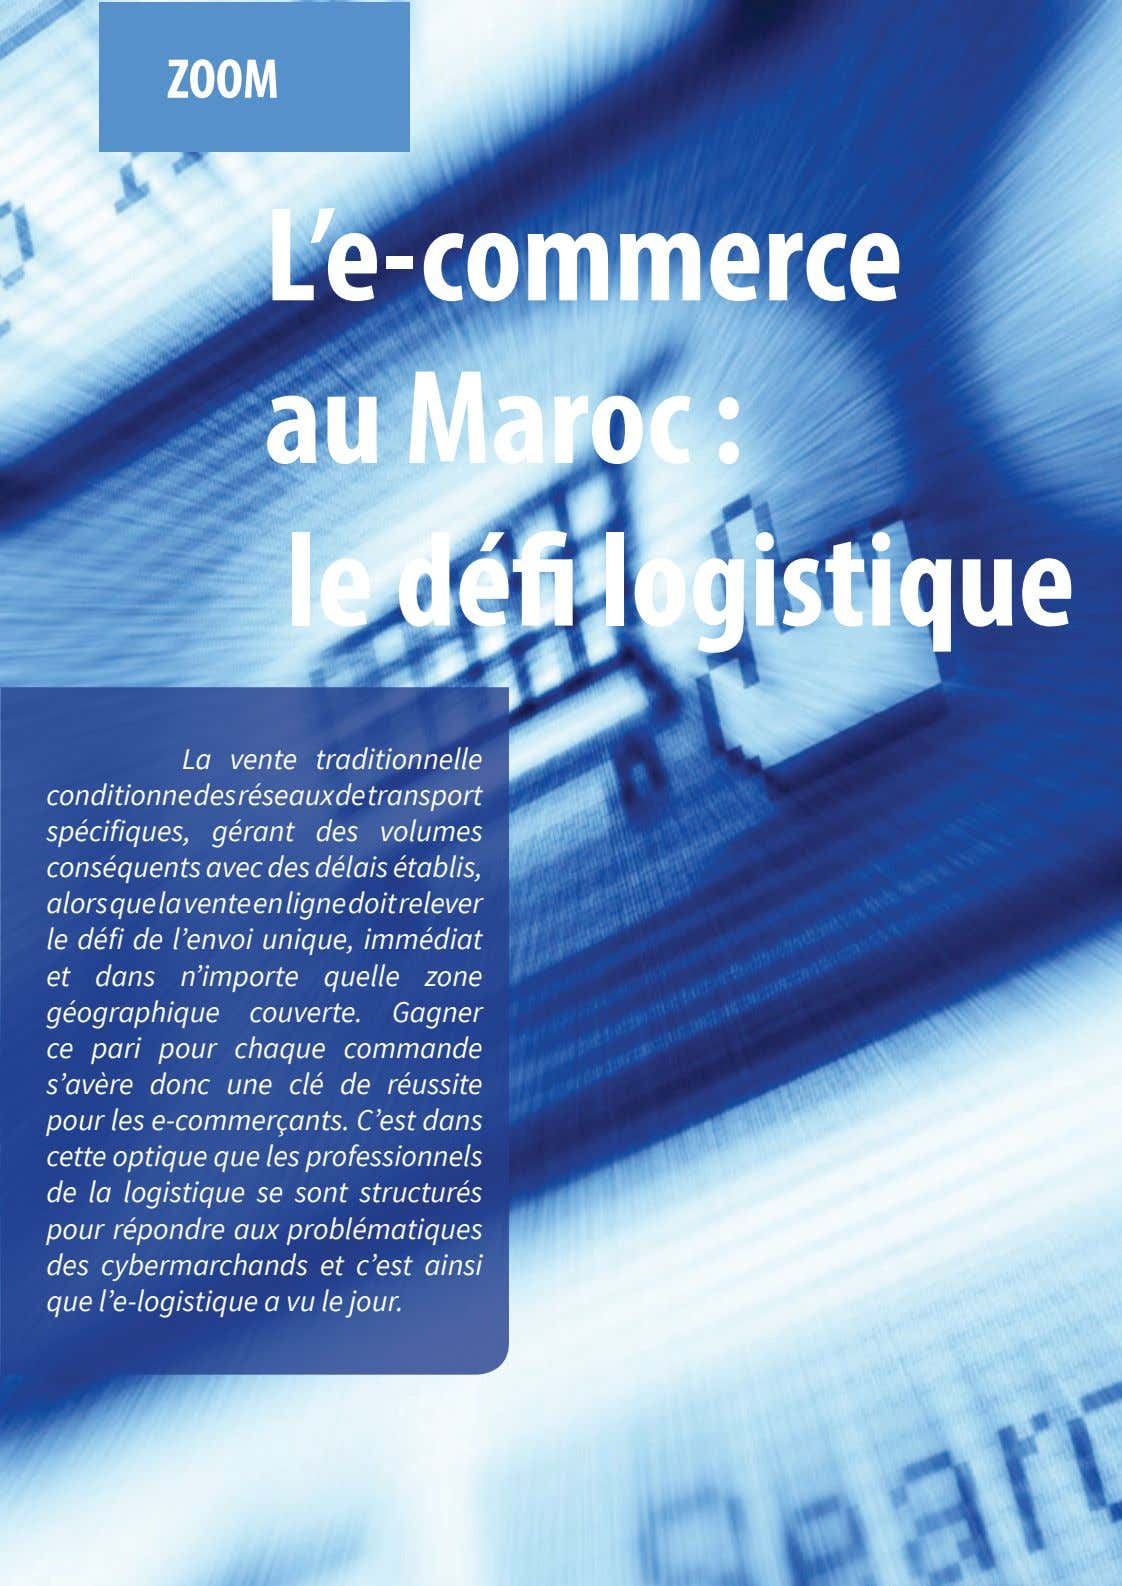 ZOOM L'e-commerce au Maroc : le défi logistique La vente traditionnelle conditionnedesréseauxdetransport